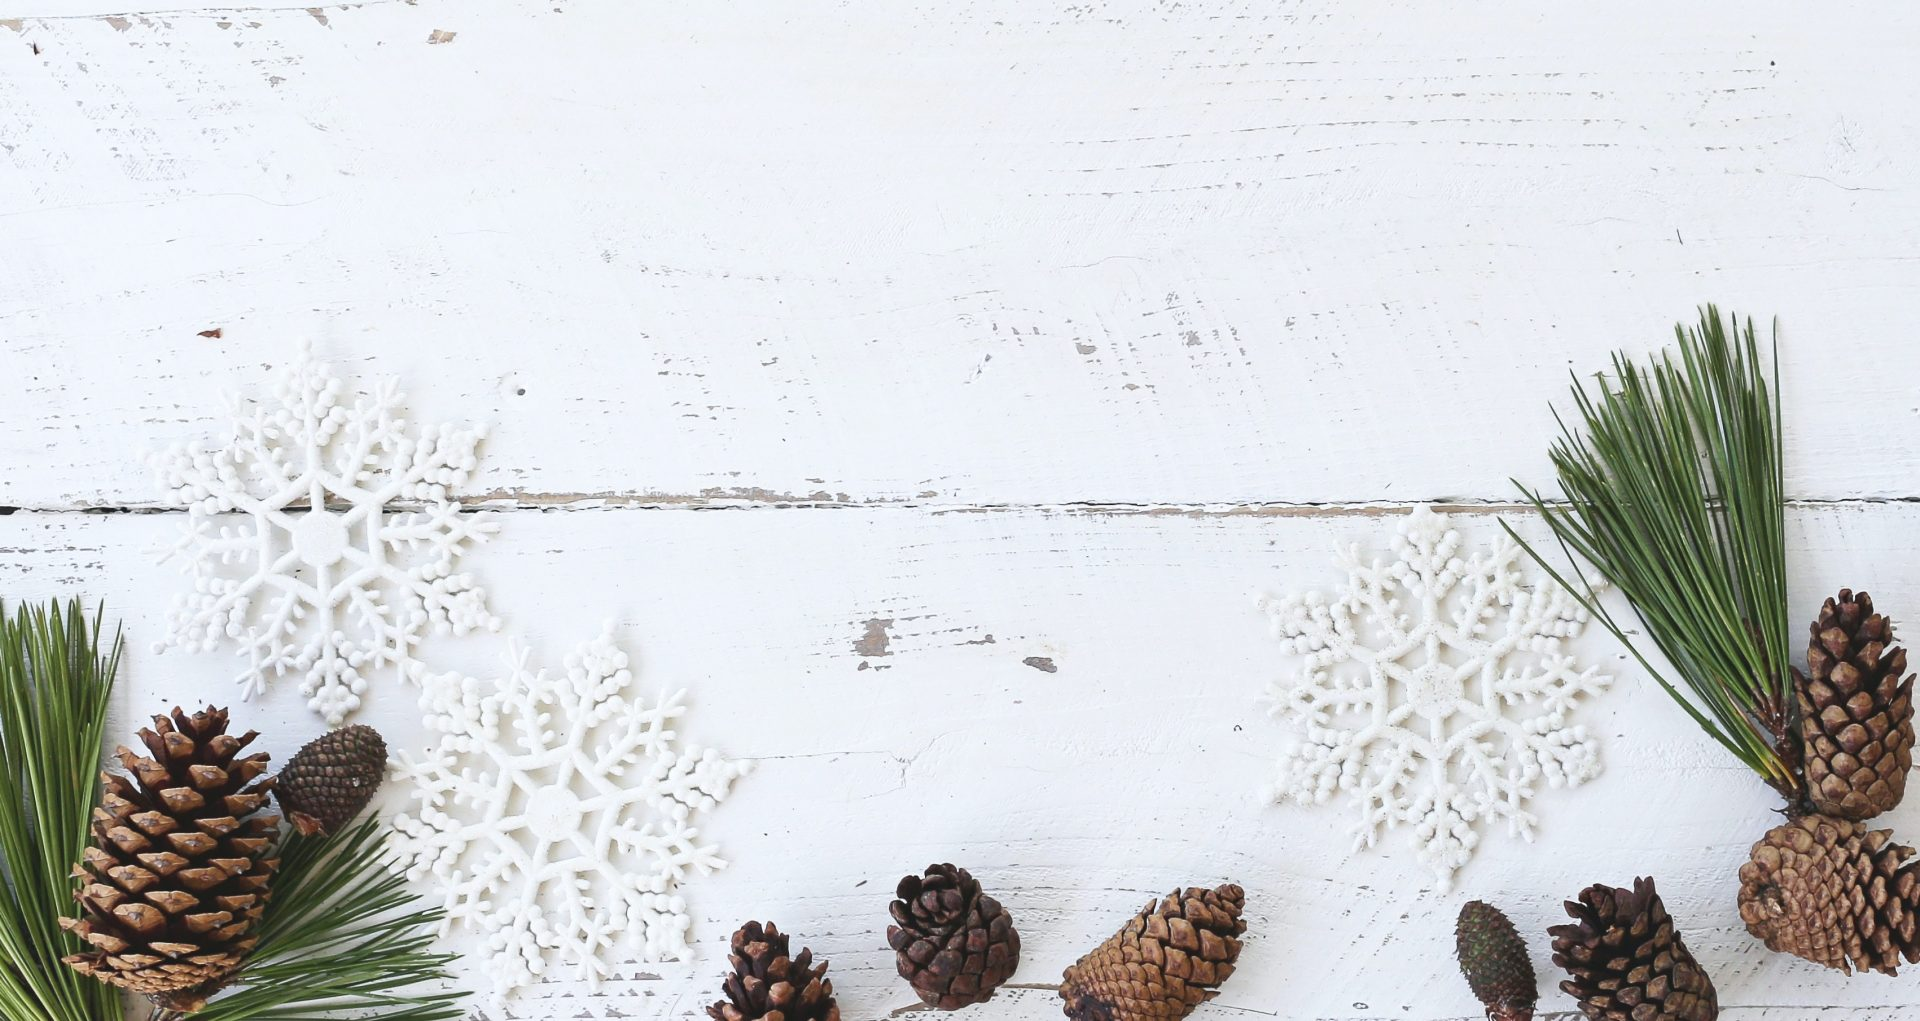 pinecones, snowflakes, and pine branches on a painted white board